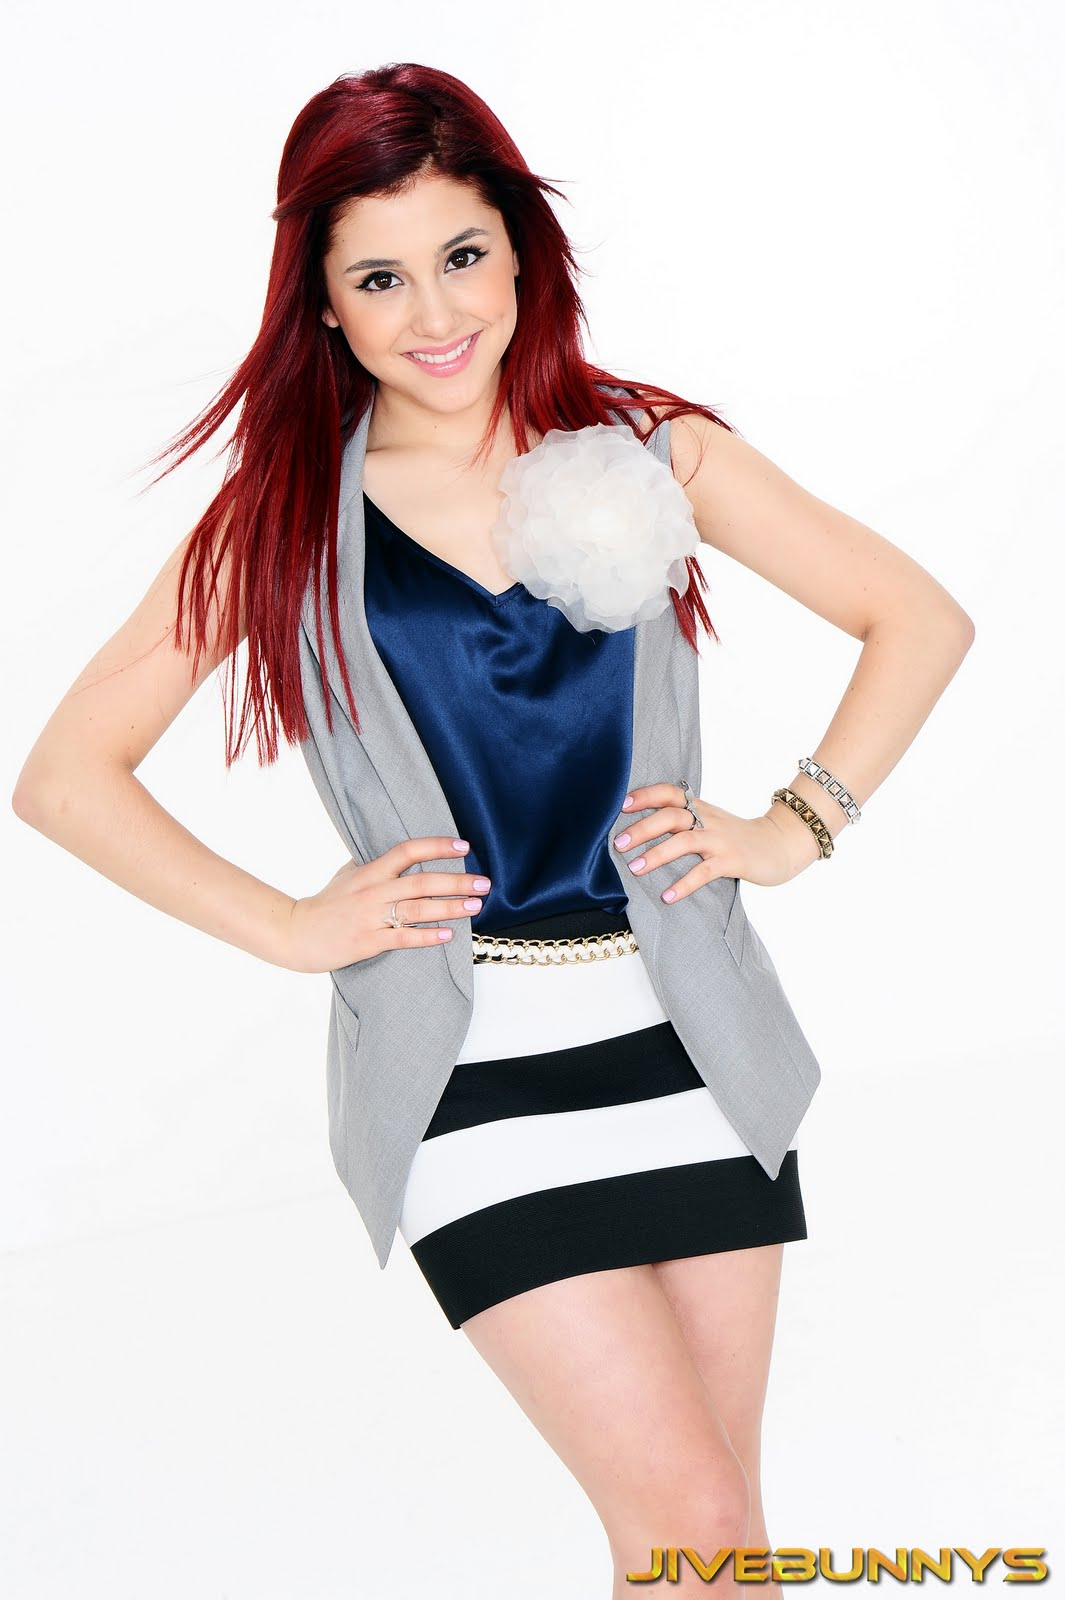 victorious wallpaper top model - photo #20